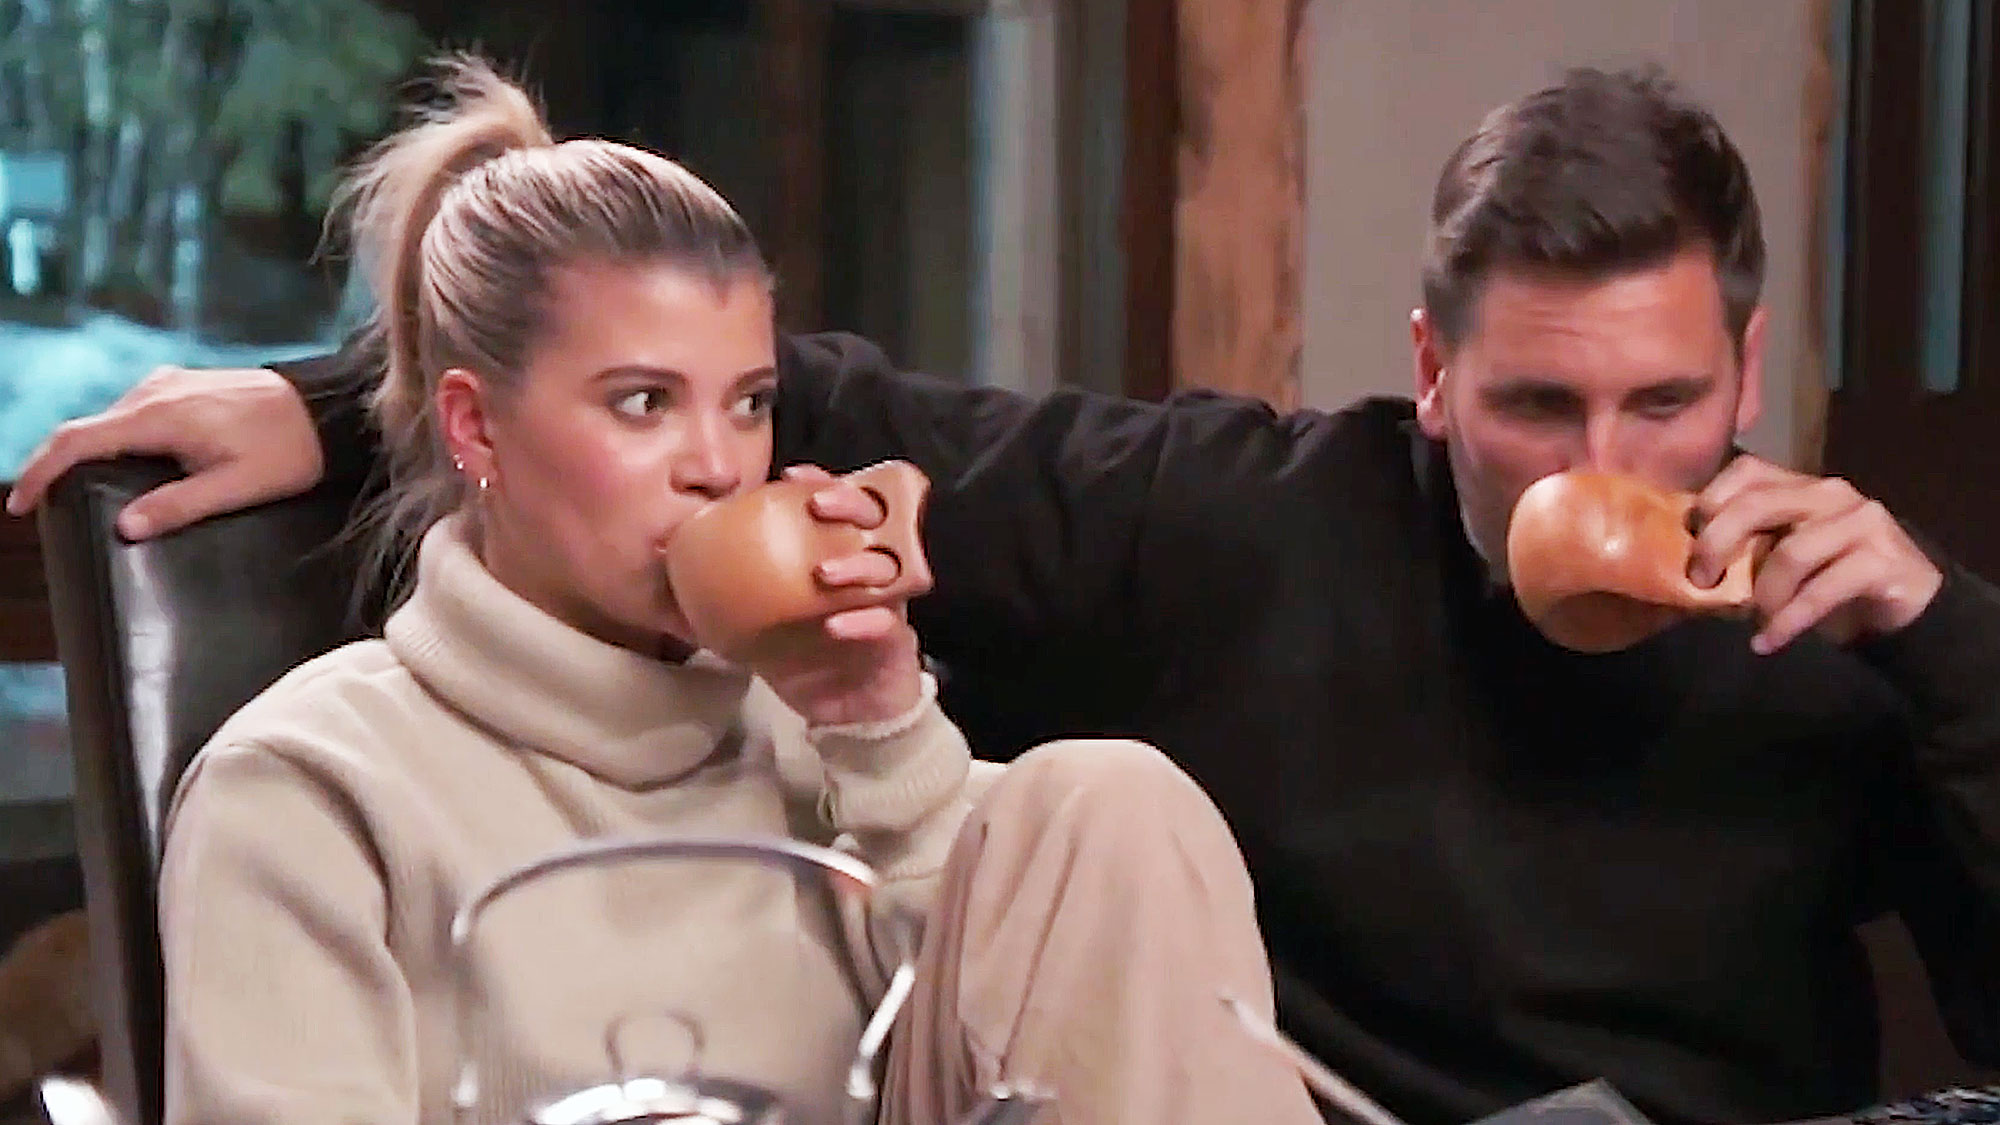 Sofia Richie Makes Awkward KUWTK Debut with Scott Disick and Kourtney Kardashian